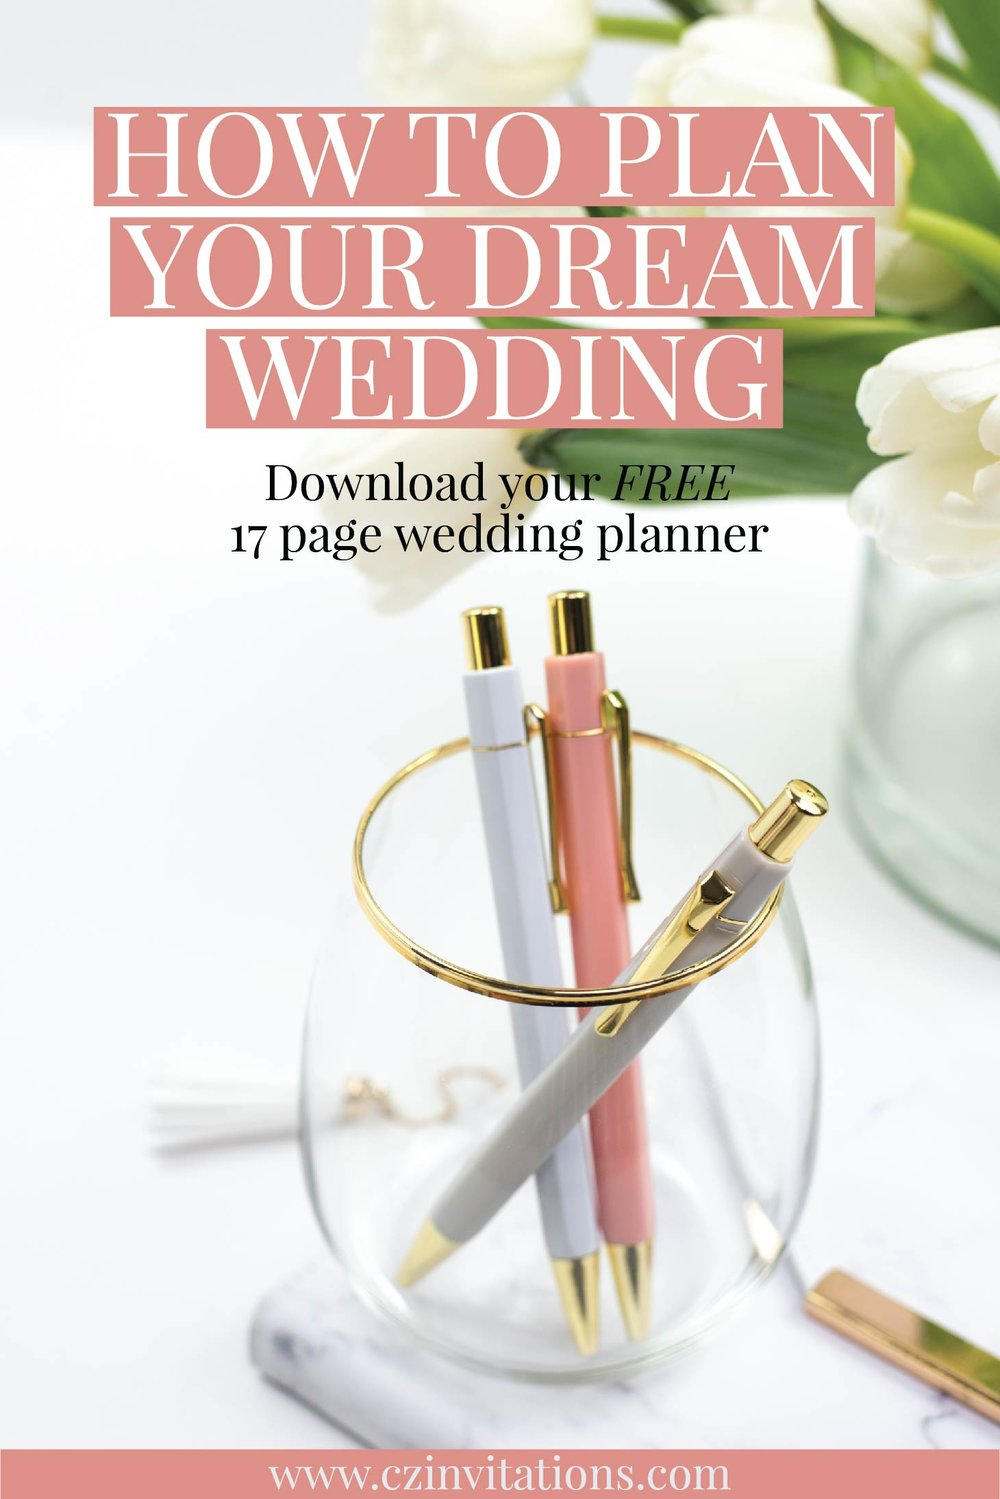 How-to-plan-your-dream-wedding-01.jpg